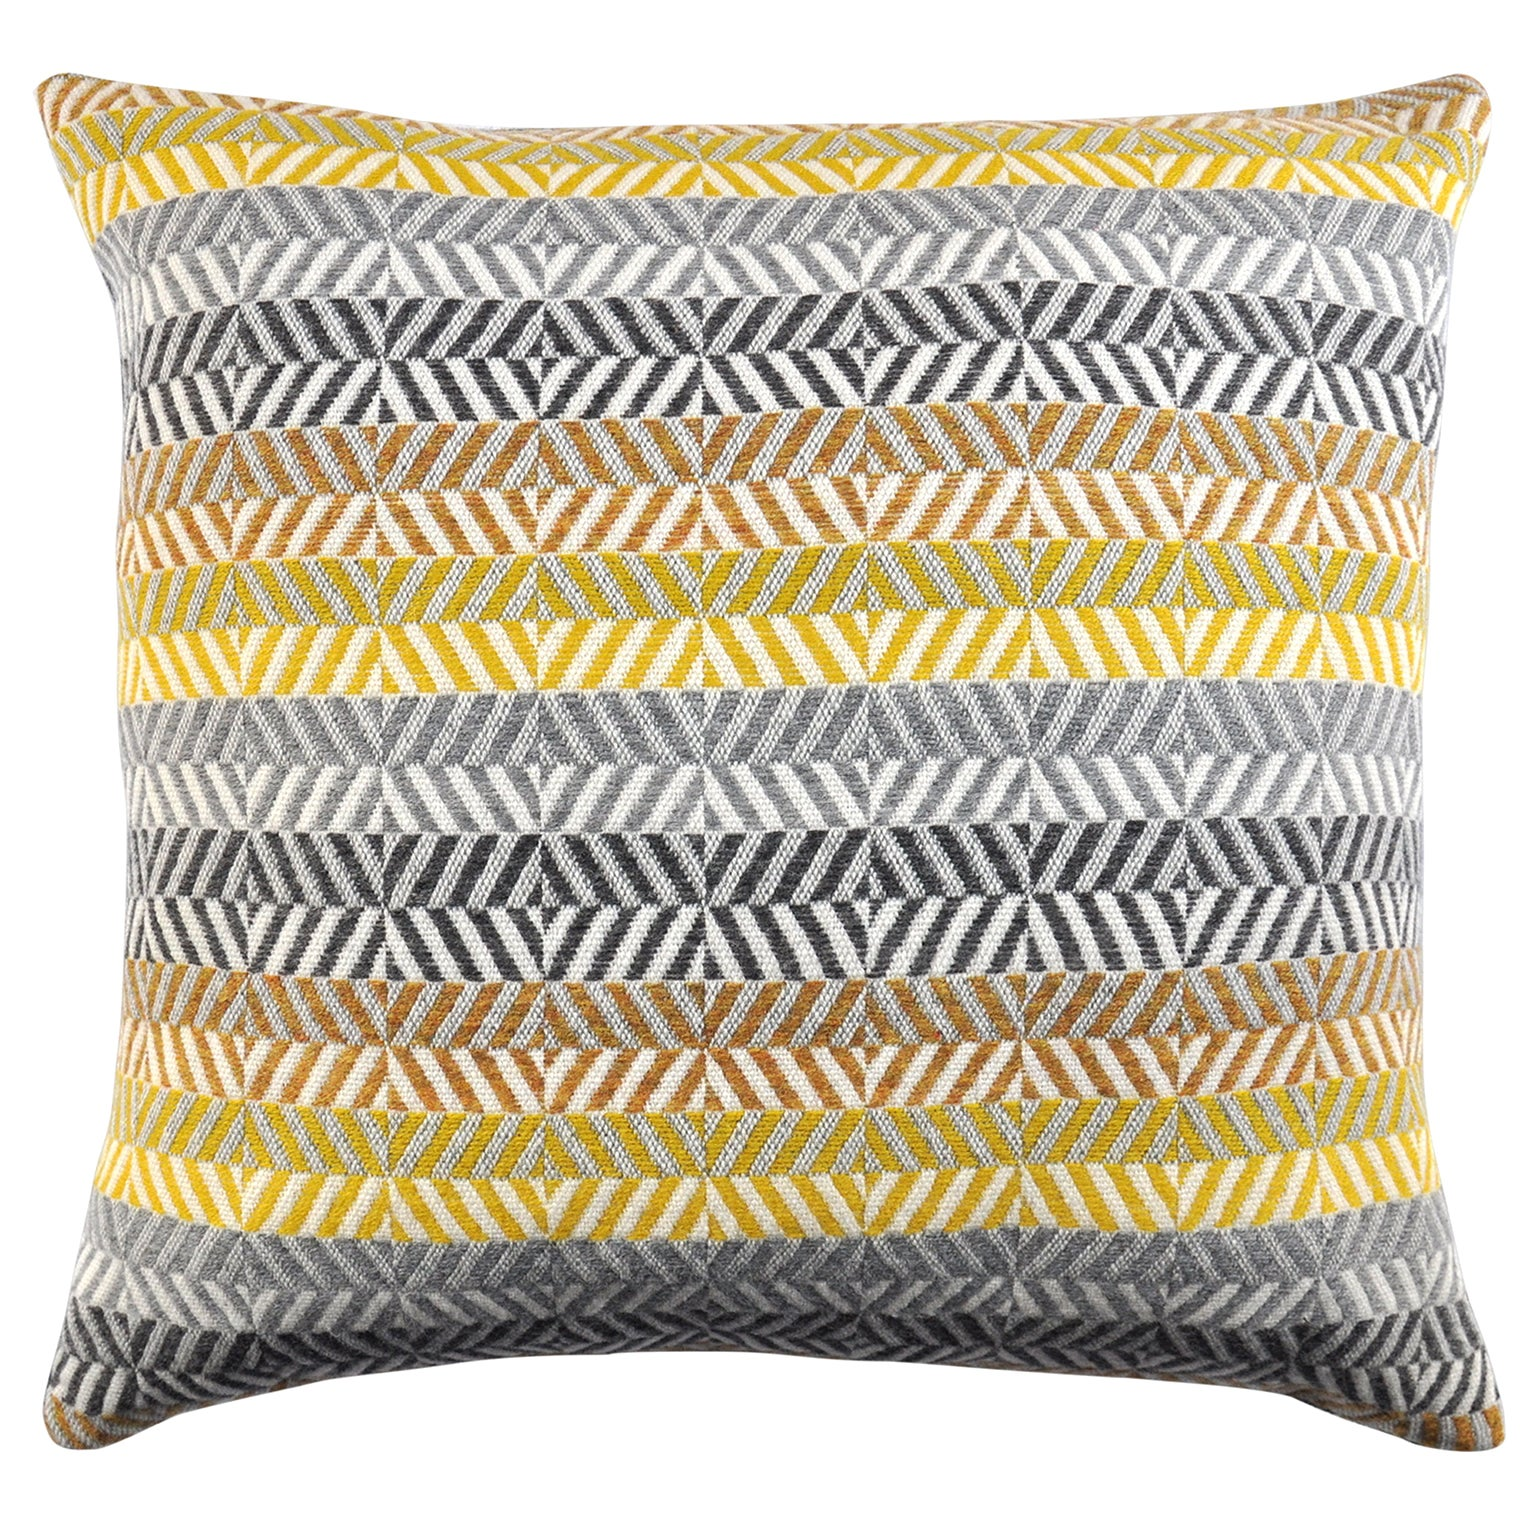 Handwoven 'Saint Gilles' Merino Wool Cushion Pillow, Piccalilli Yellow/Greys